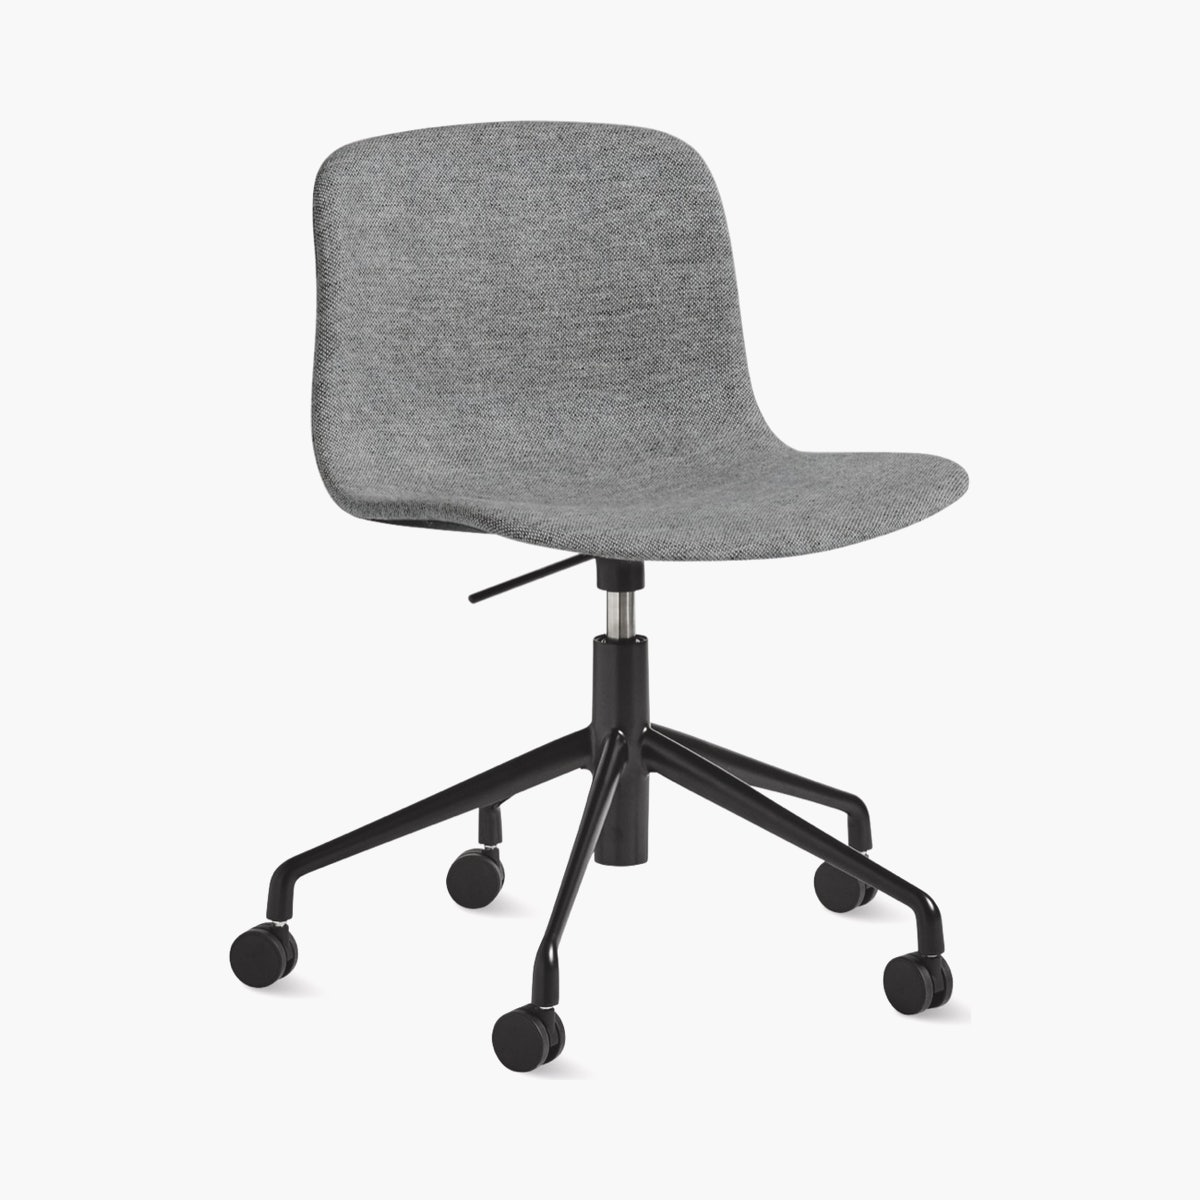 About A Chair 51 Task Chair